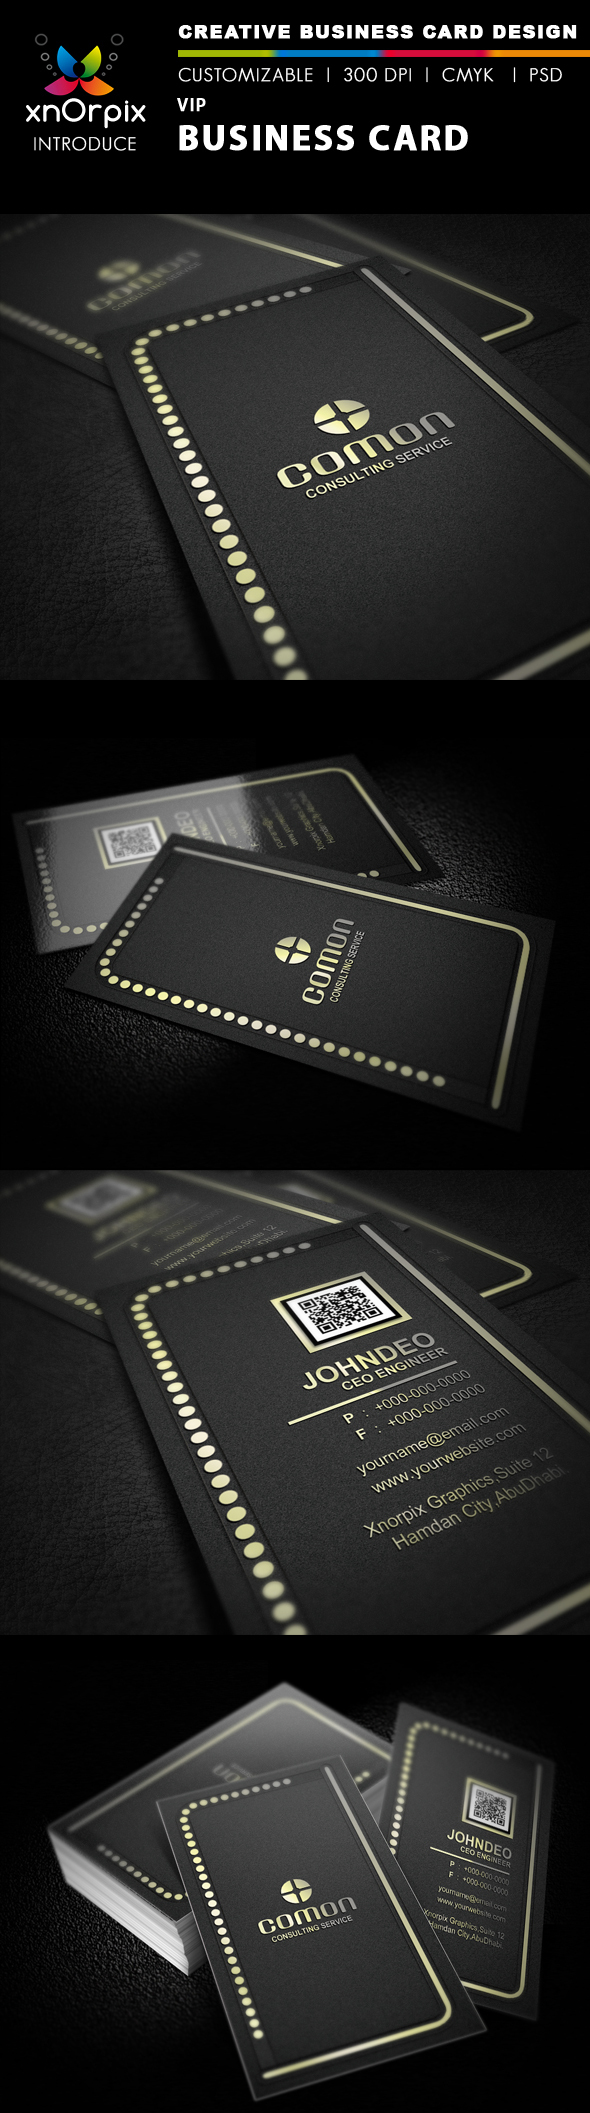 VIP Business Card by noufal ap, via Behance | BUSINESS CARD ...